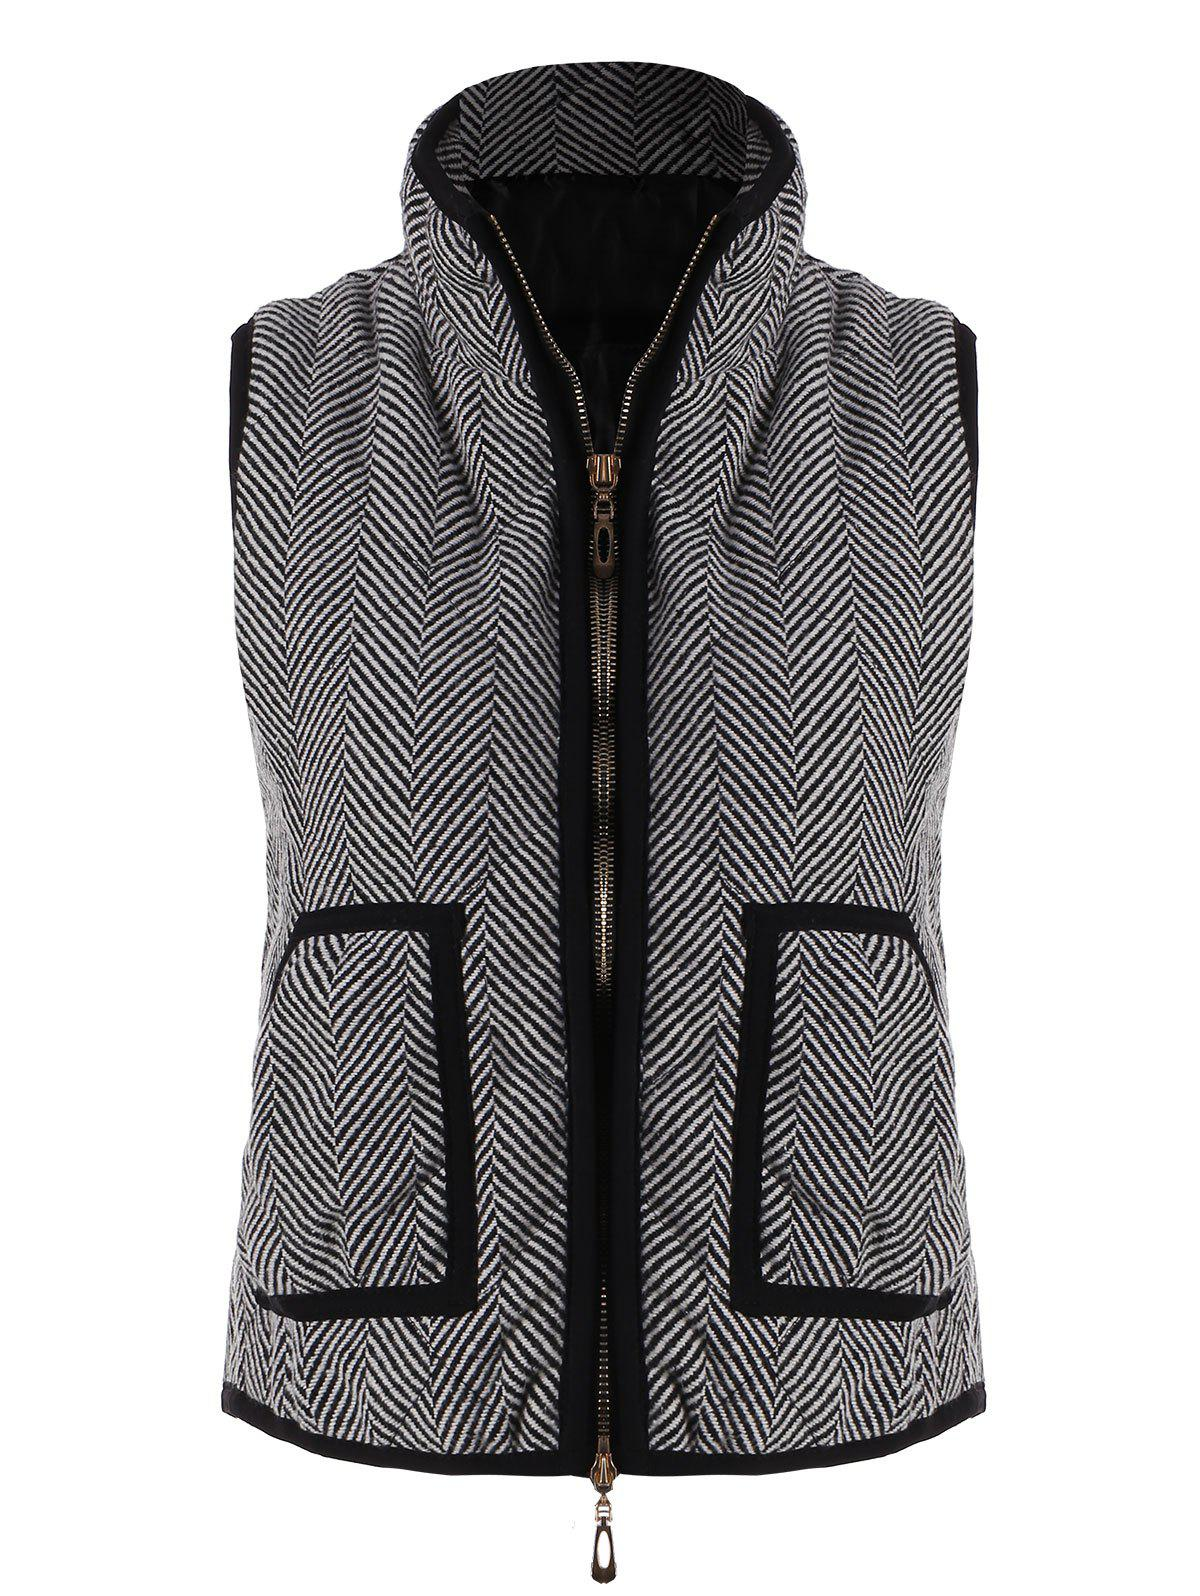 Zip Up Pocket Herringbone Vest - GRAY S